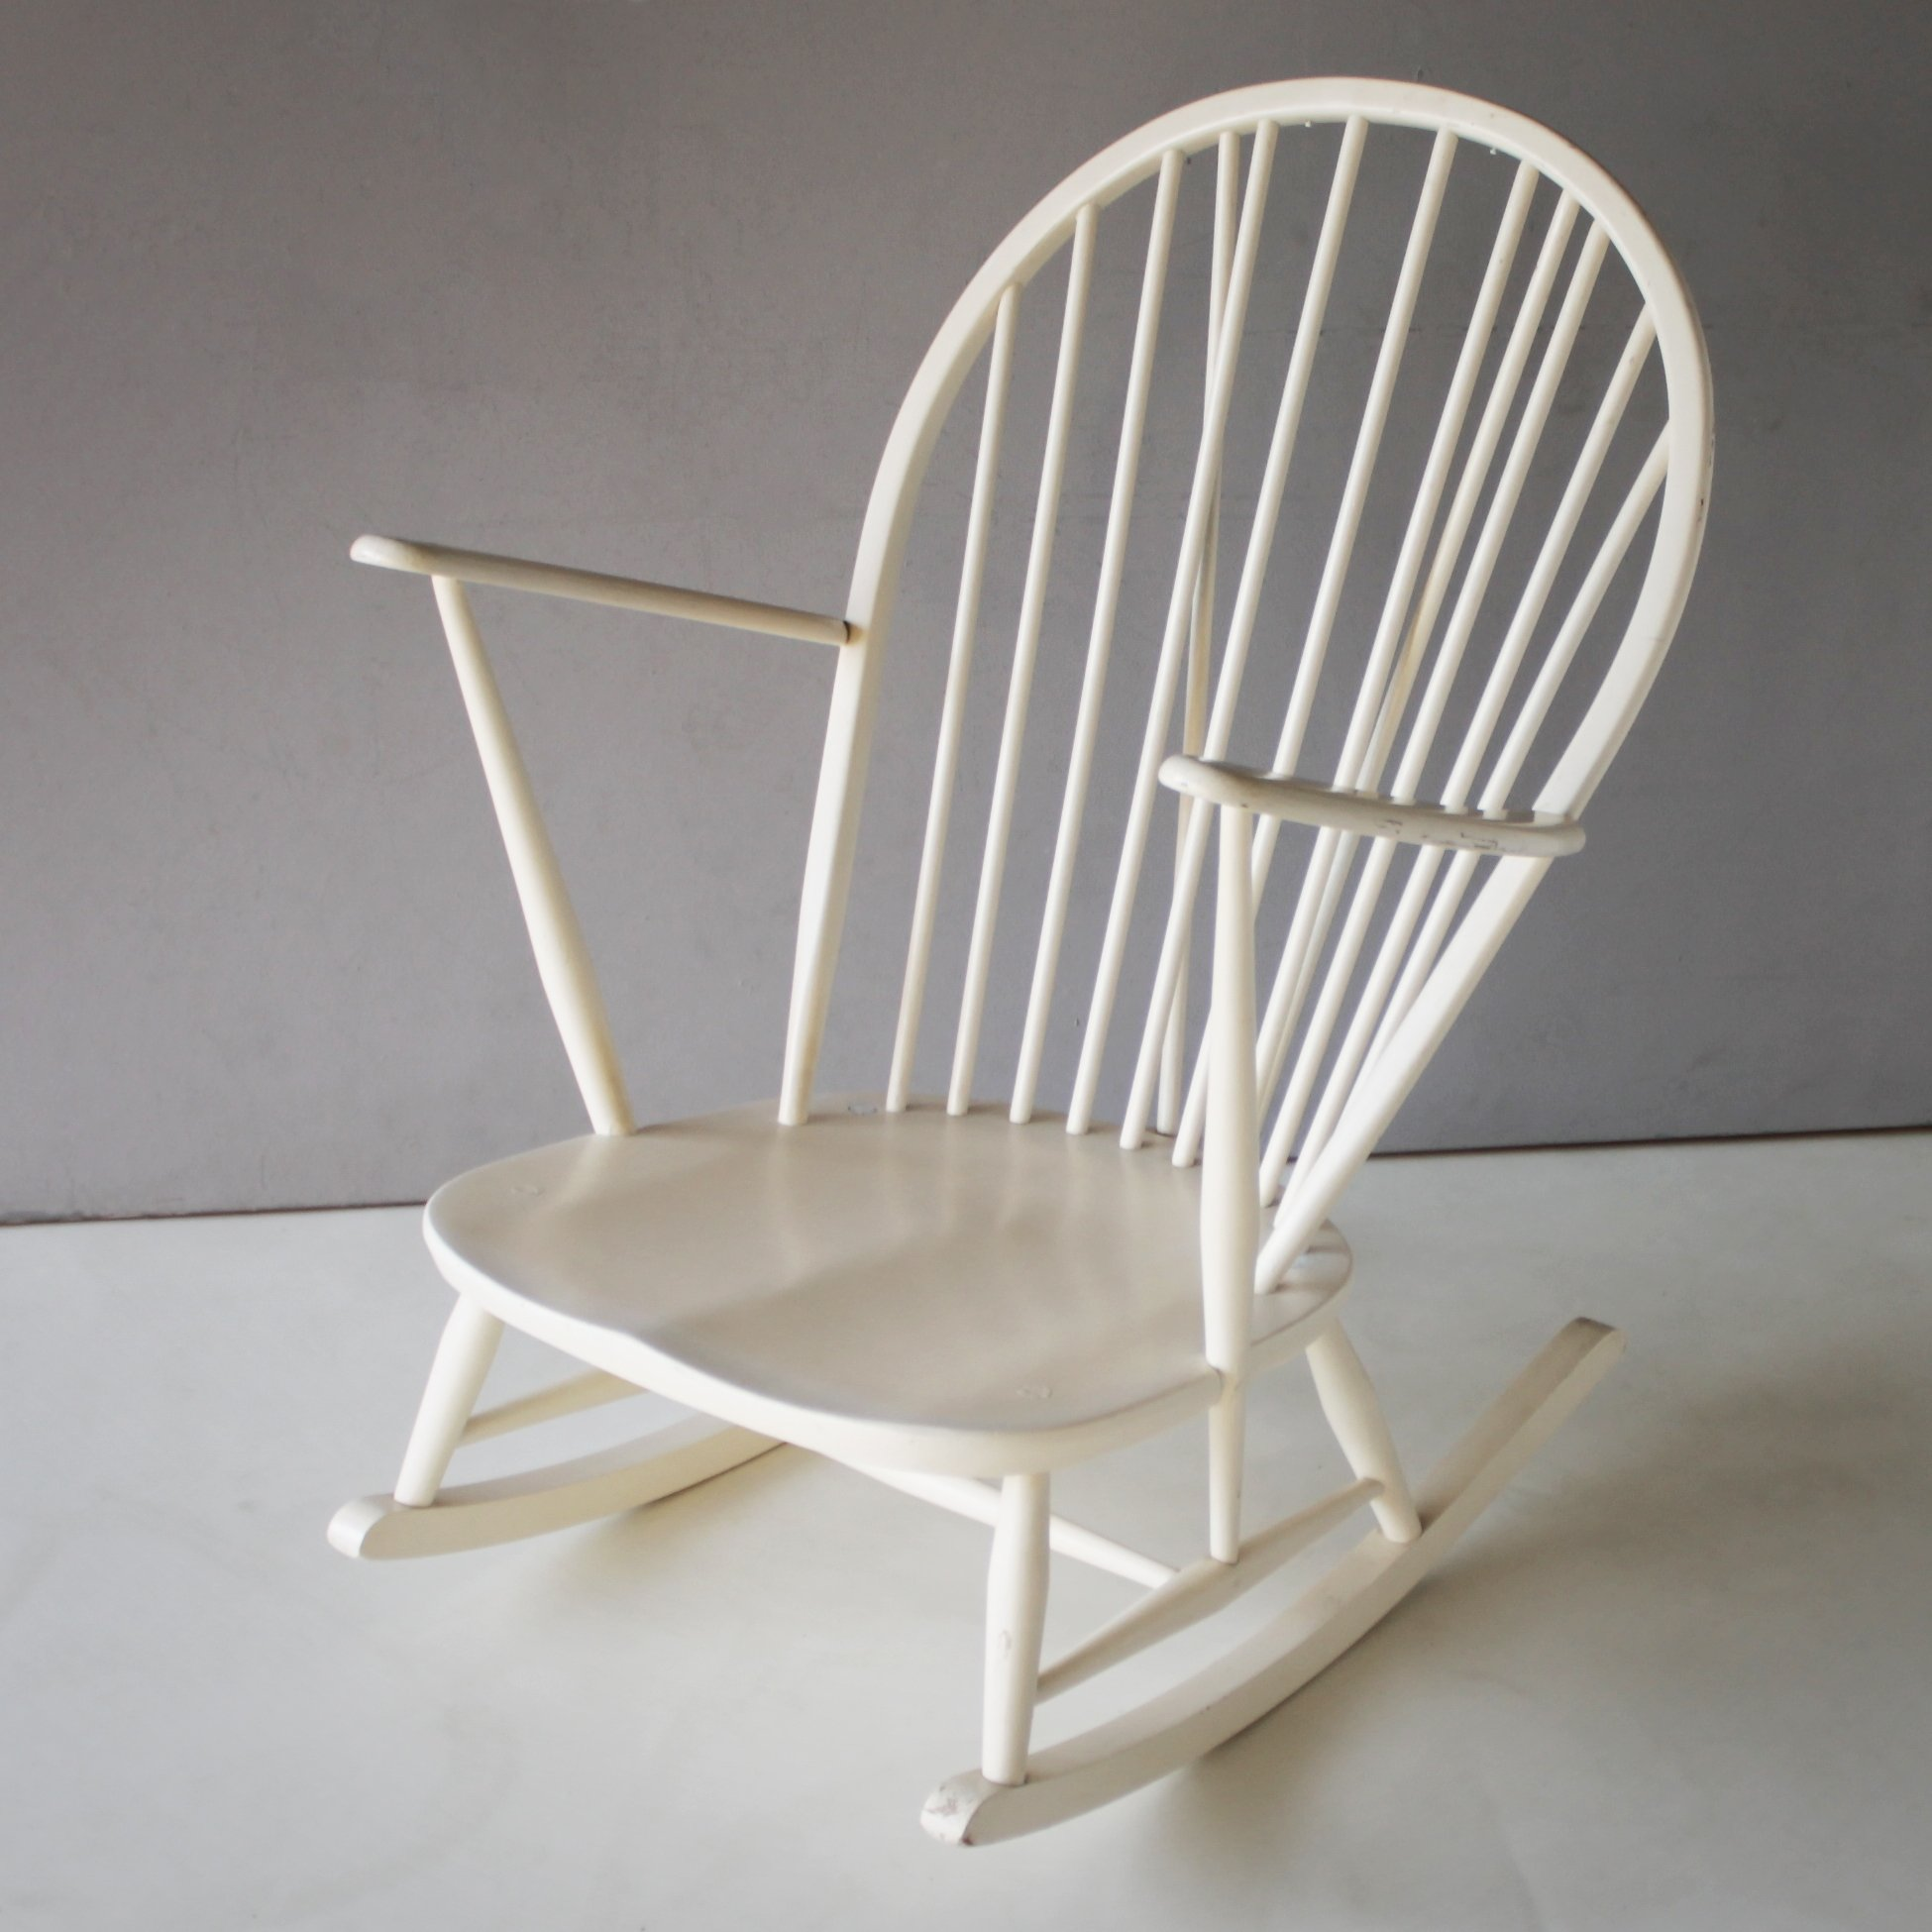 Rocking Chair by Lucian Ercolani for Ercol